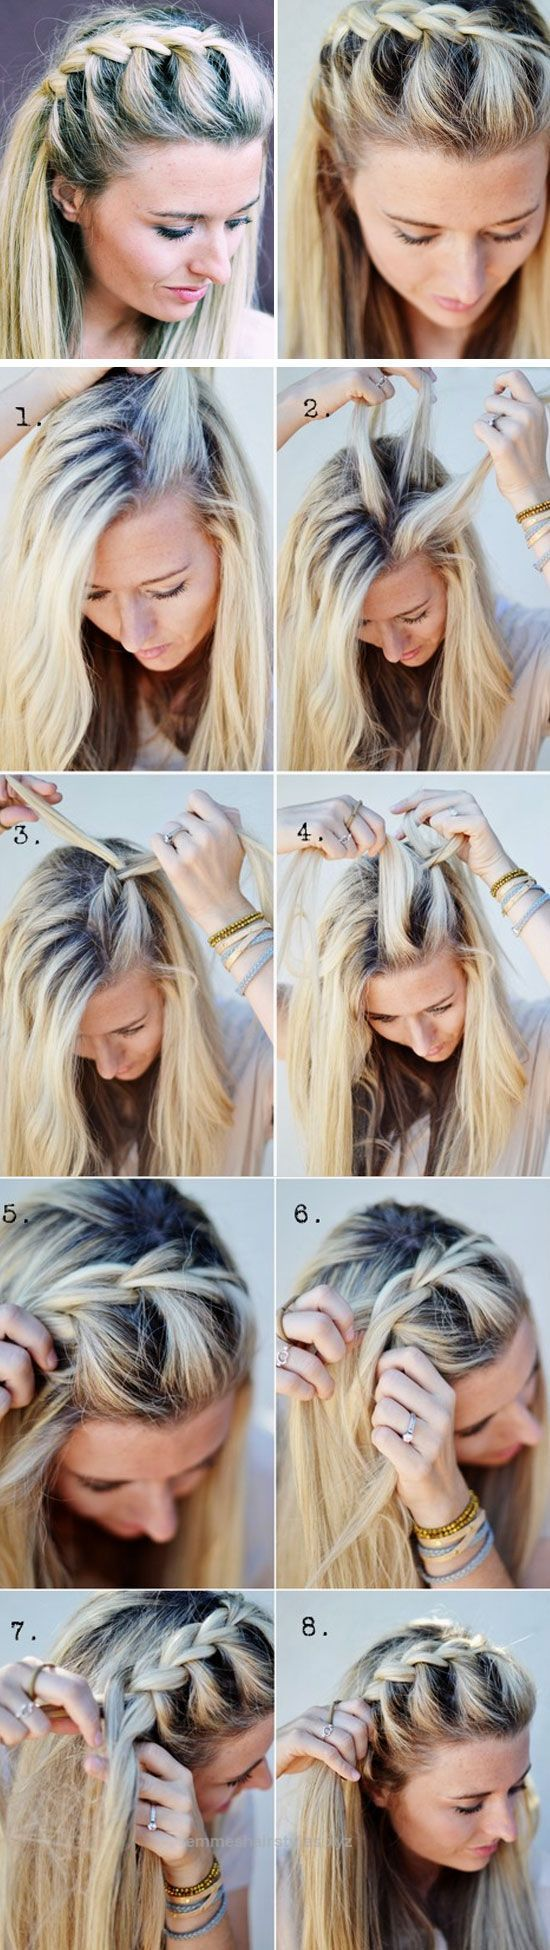 Splendid Half-Up Side French Braid   18 Easy Fall Hairstyles for Medium Hair that are oh so trendy!  The post  Half-Up Side French Braid   18 Easy Fall Hairstyles for Medium Hair that are oh …   ..